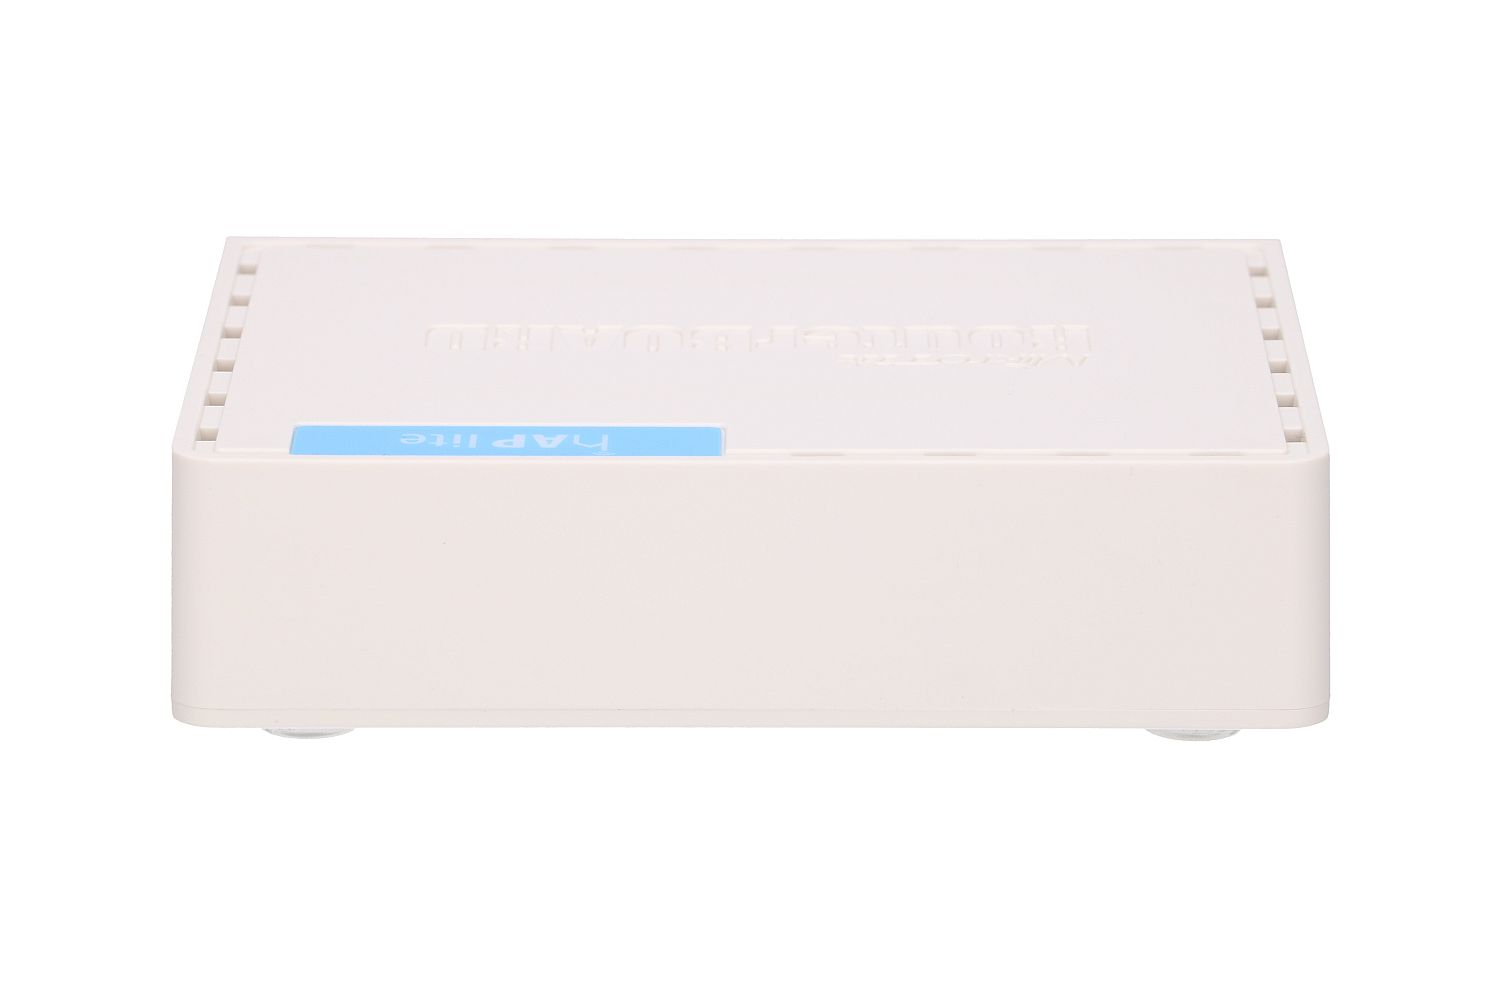 Mikrotik Hap Lite Rb941 2nd 24ghz Router Wifi 7389647784 Rb 941